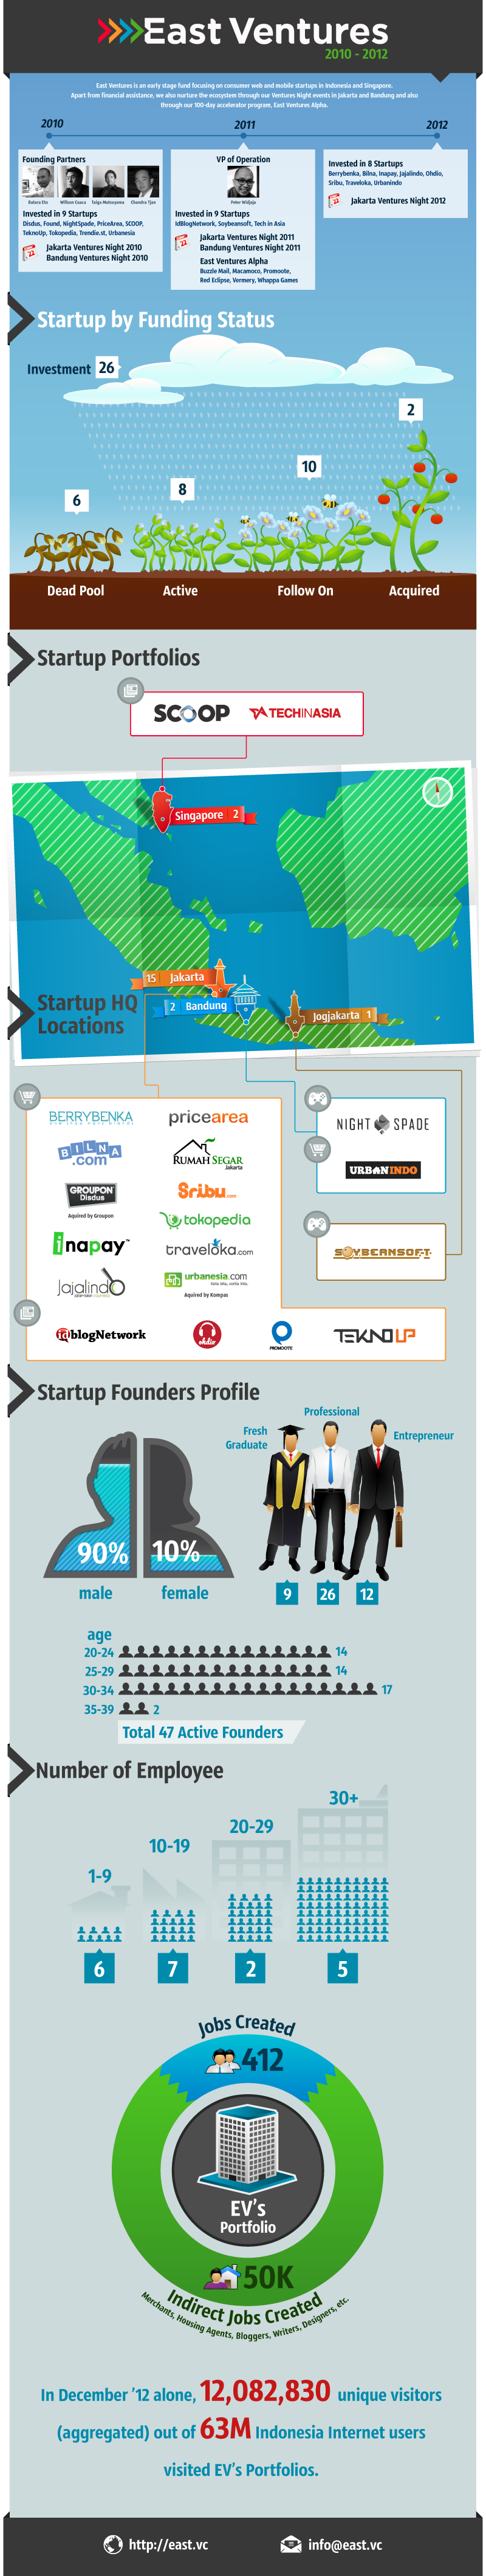 East Ventures on 3rd Anniversary - Infographic